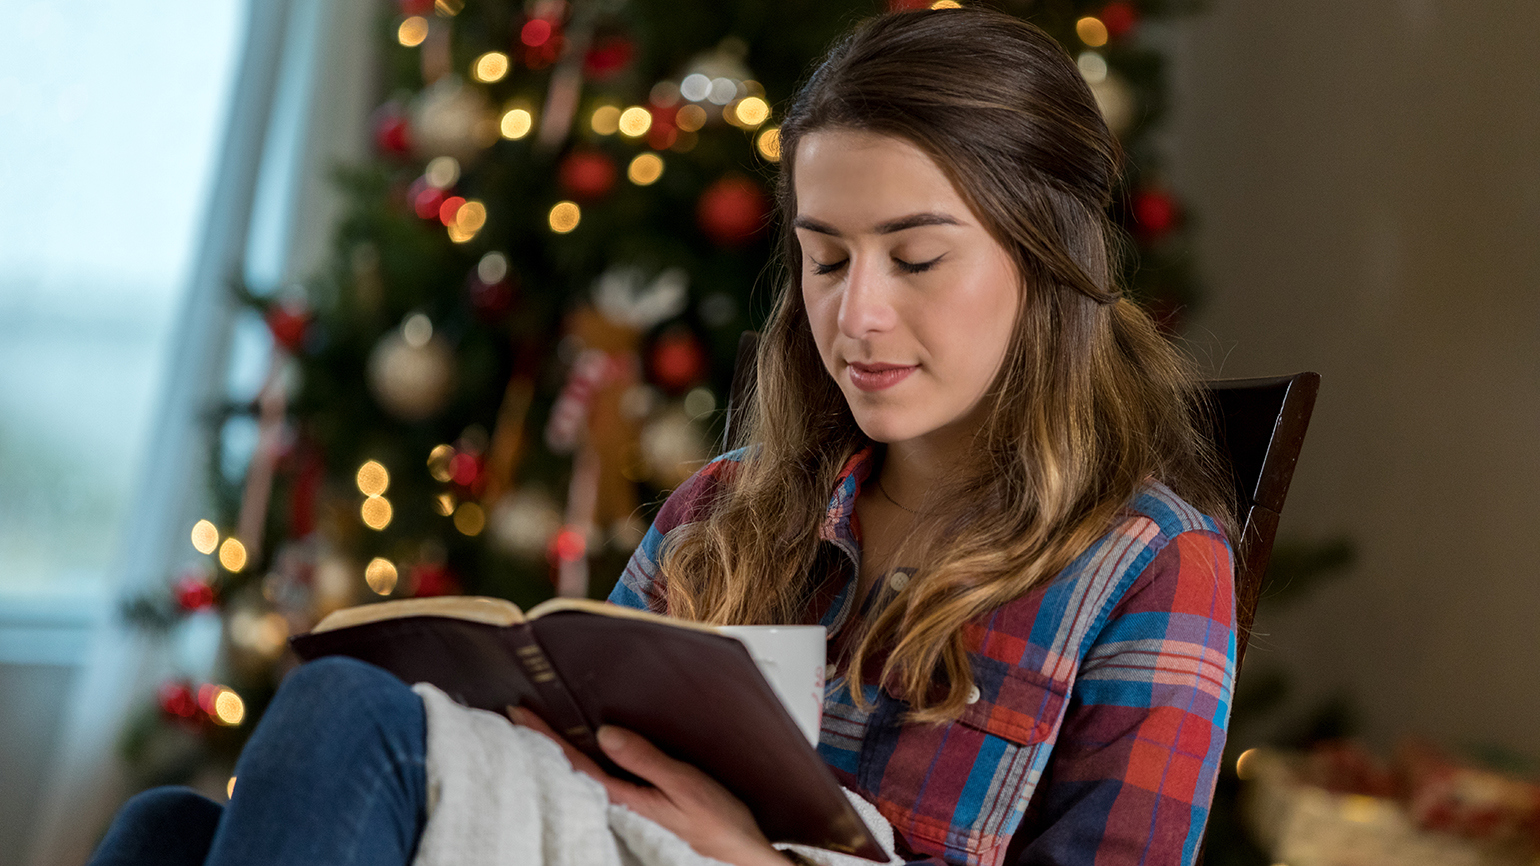 A woman prays over her open Bible at Christmastime